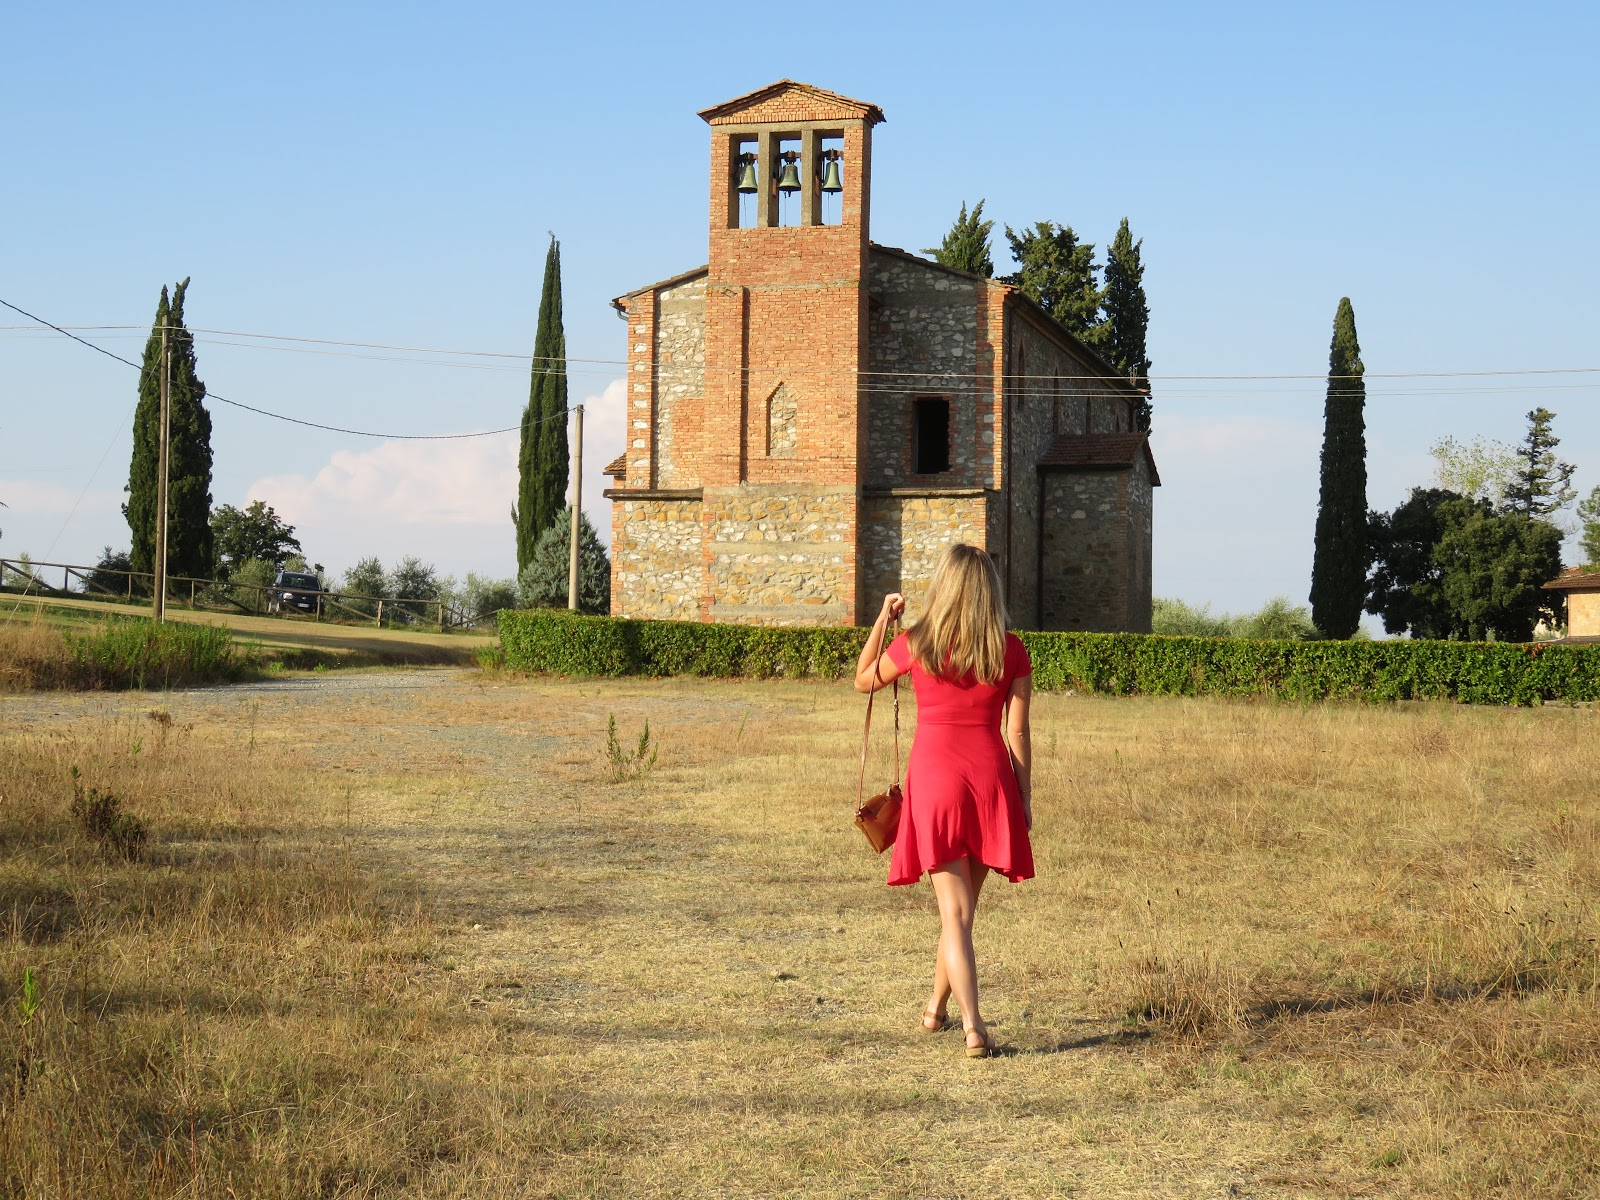 Young woman walking away across a field towards historic site